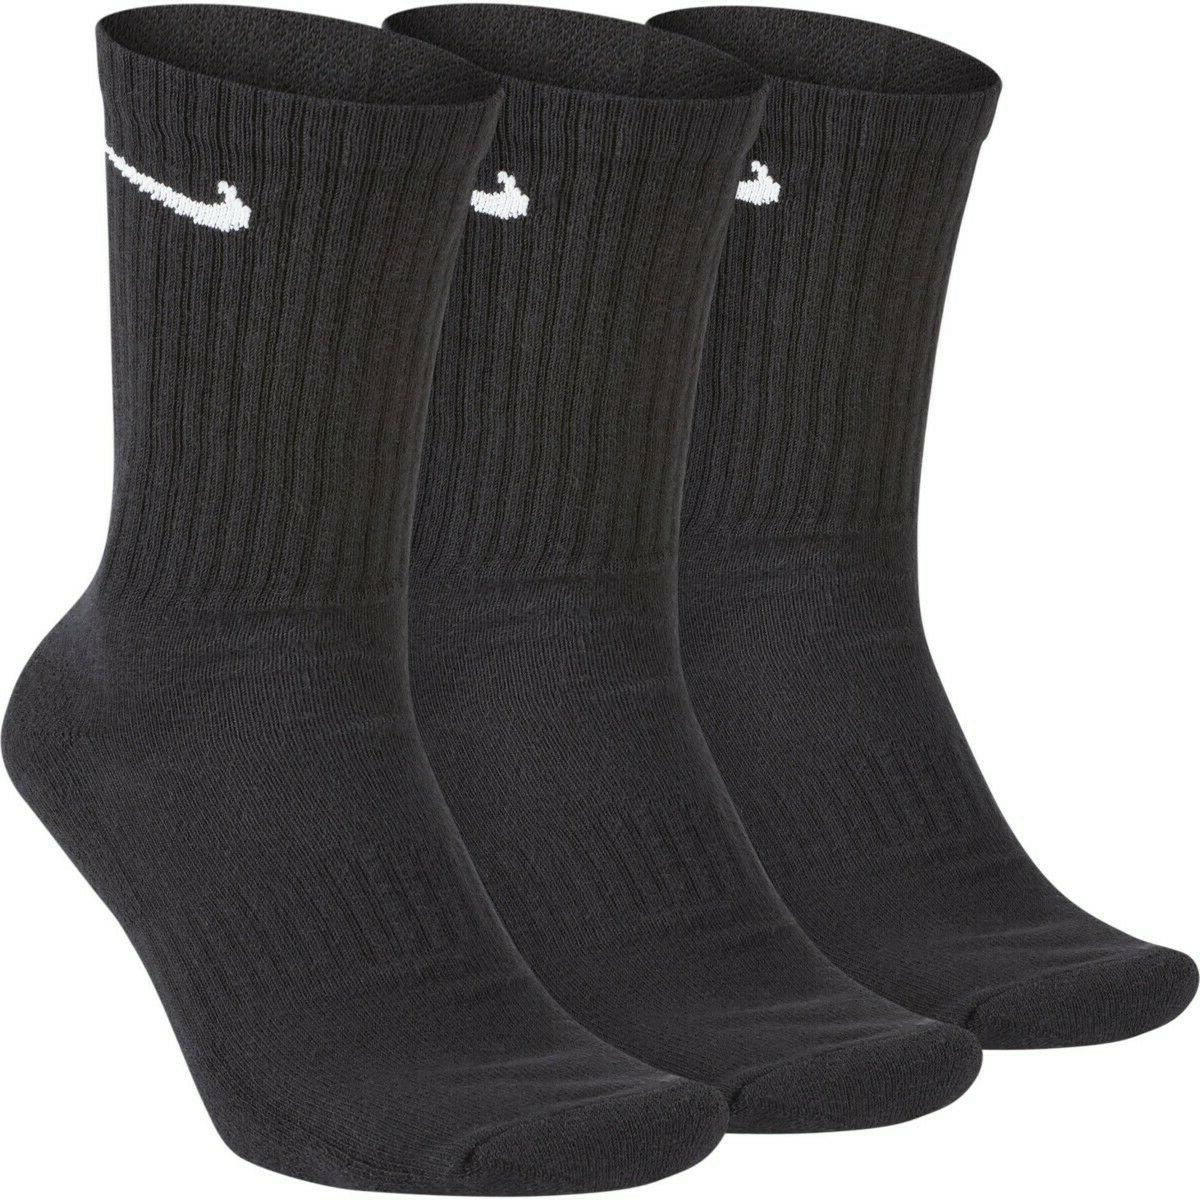 everyday cotton cushioned crew socks 3 pack